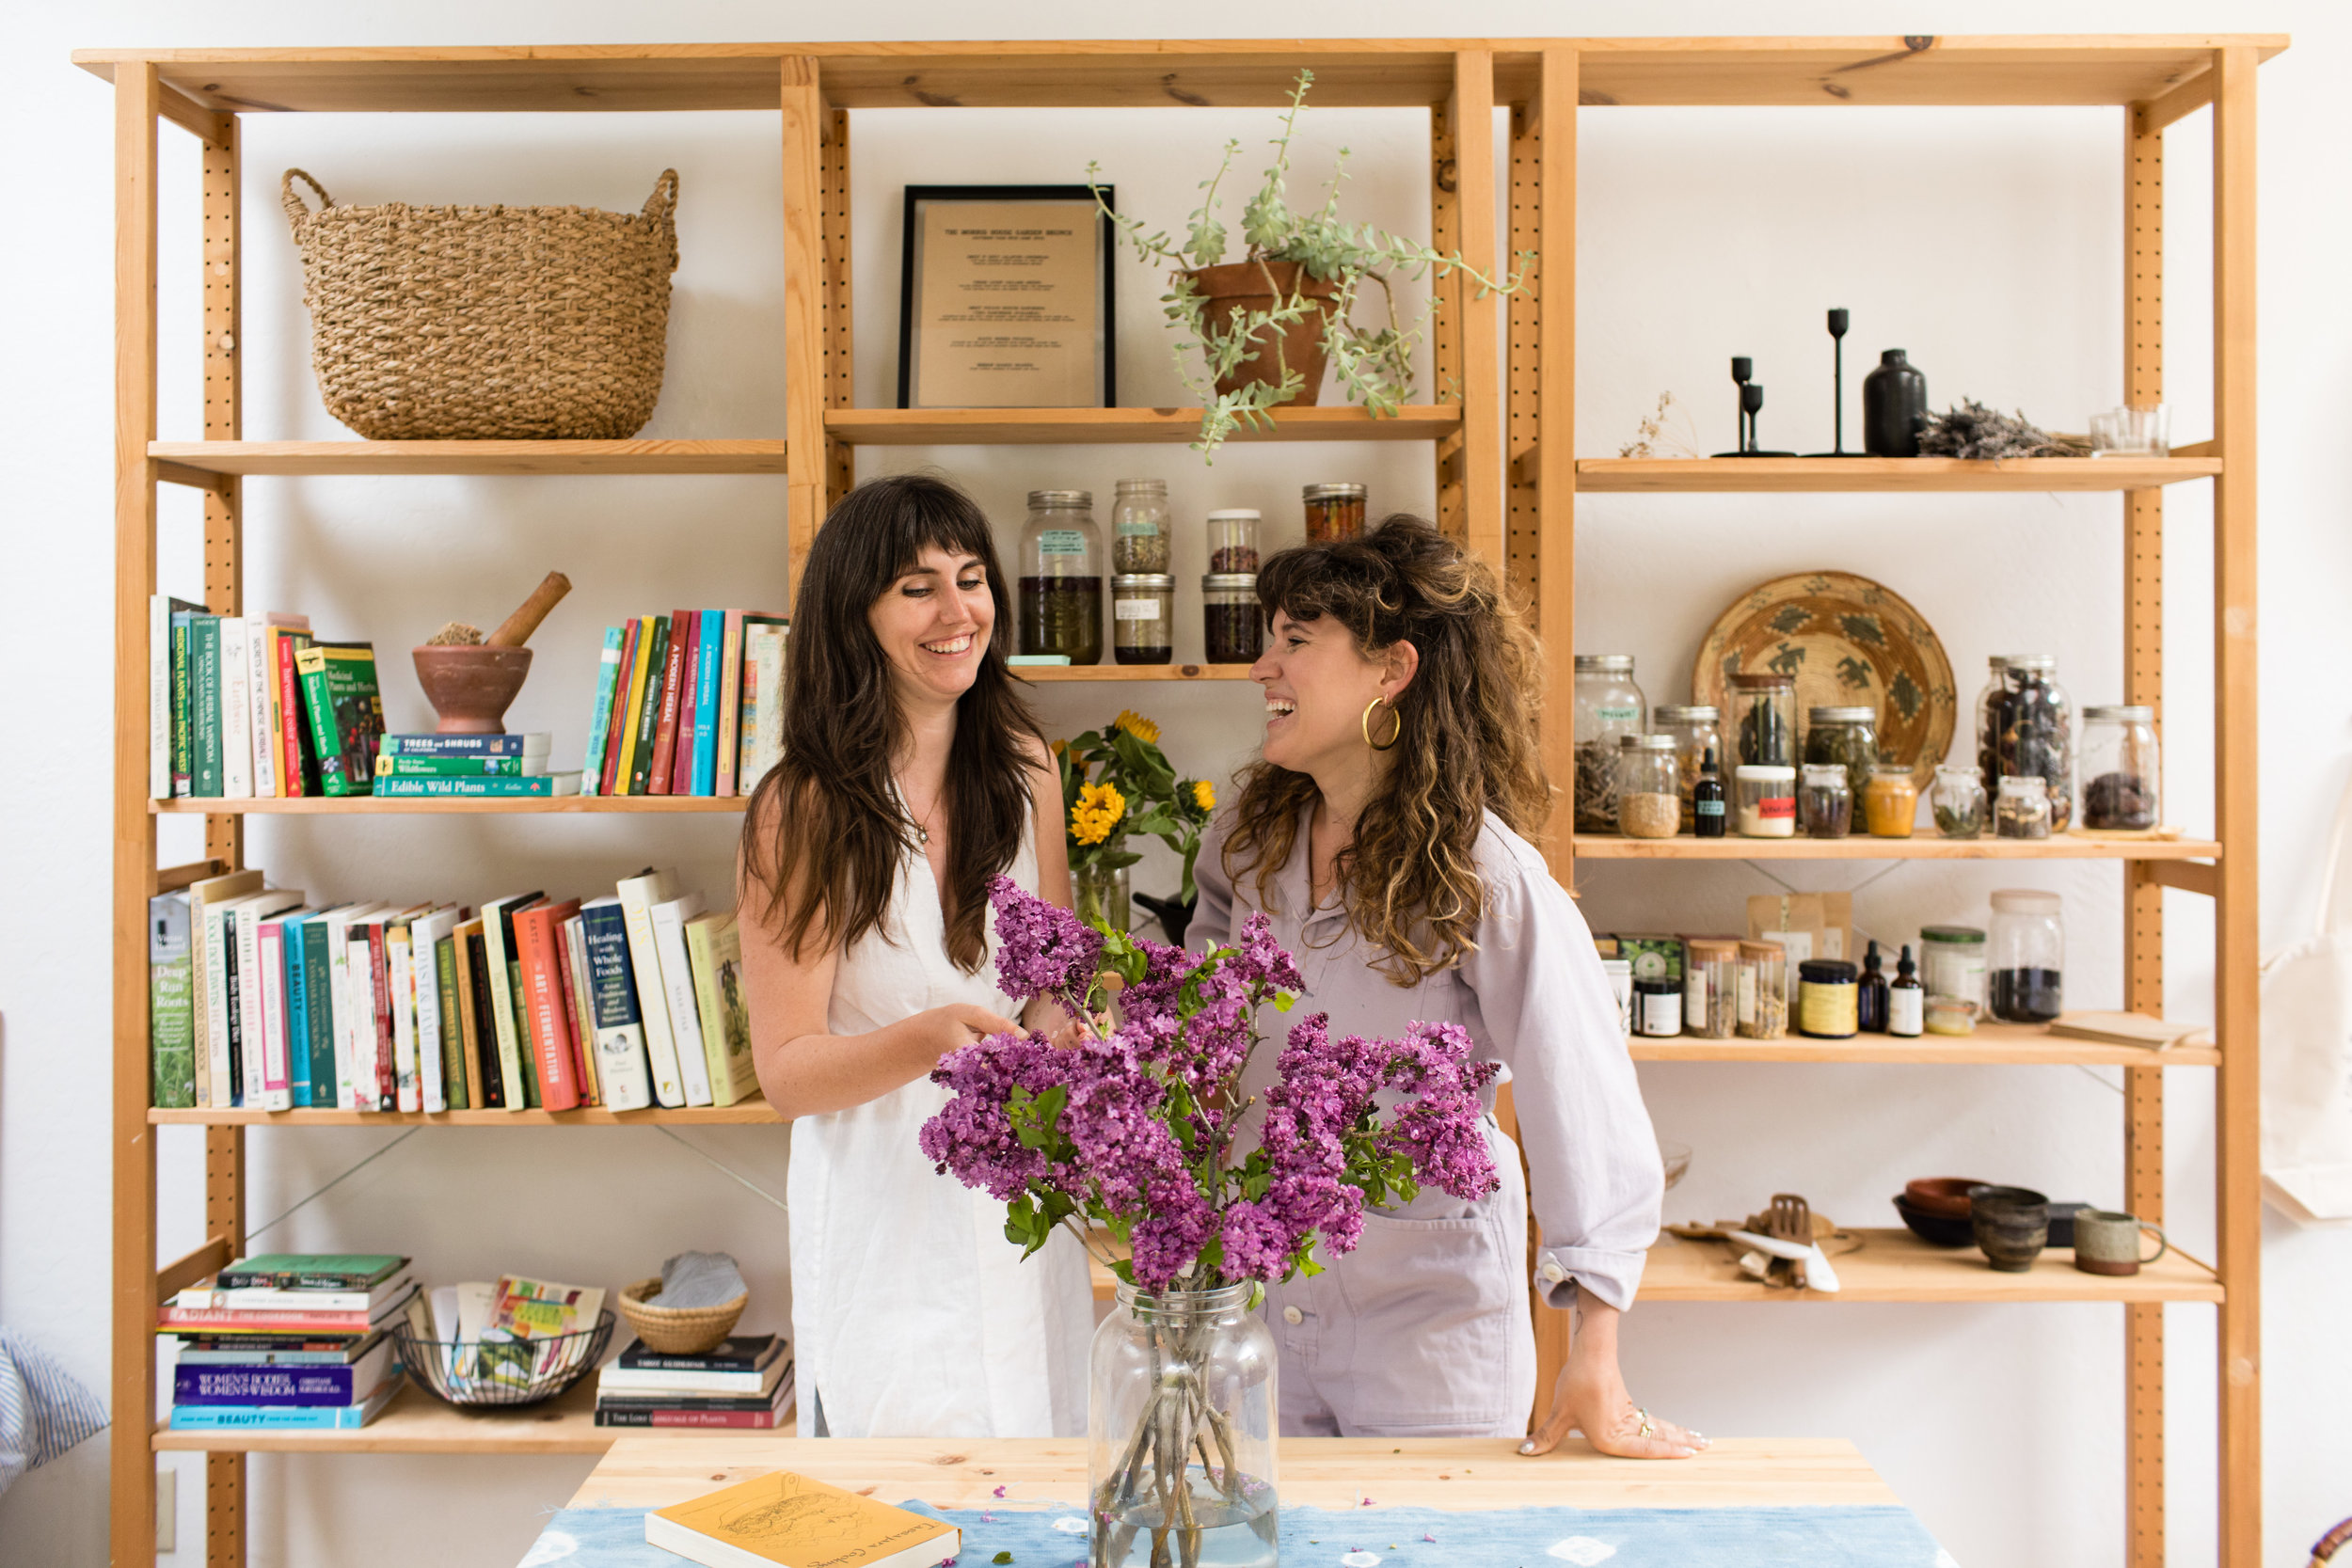 YOUR HERBAL GUIDES - Sarah Kate & SummerThe Herbalists behind The Kosmic Kitchen